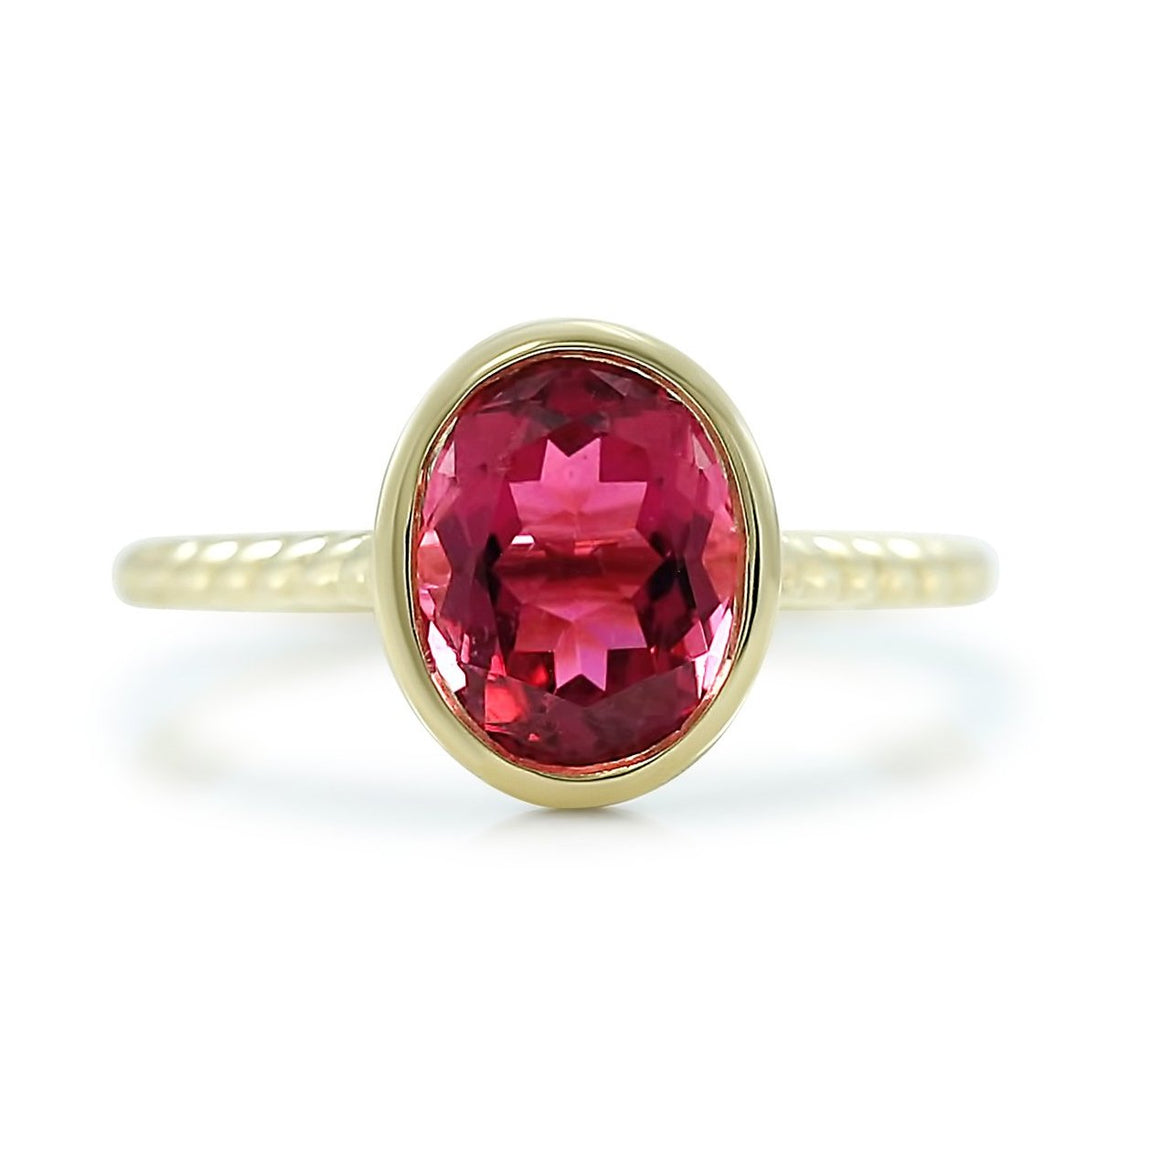 14k yellow gold bezel set oval pink tourmaline ring with a braided band